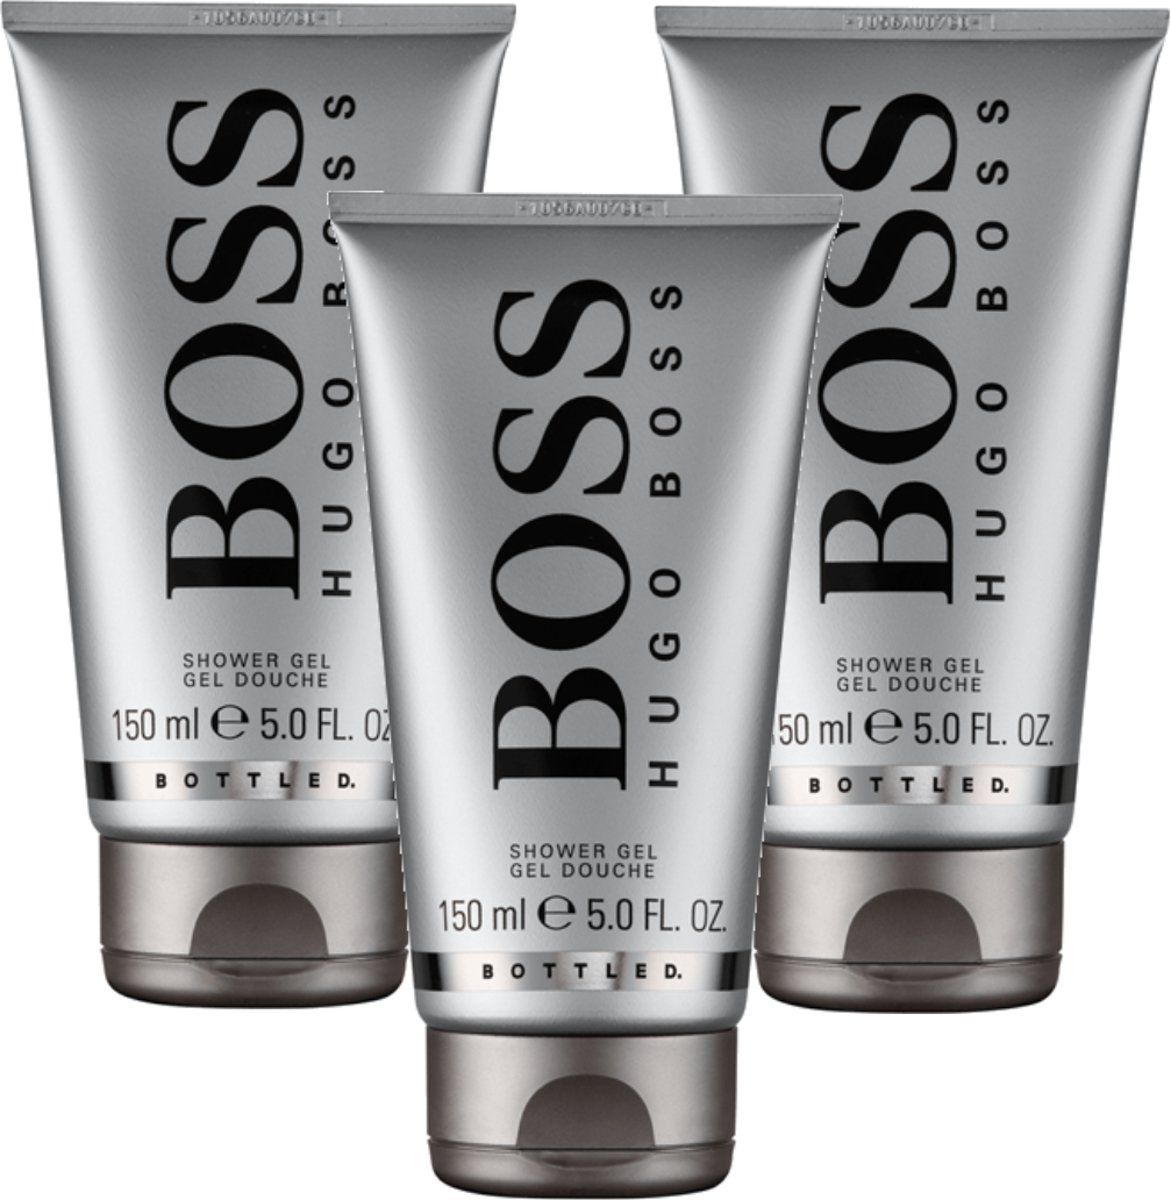 3x Boss Bottled Shower gel 150 ml